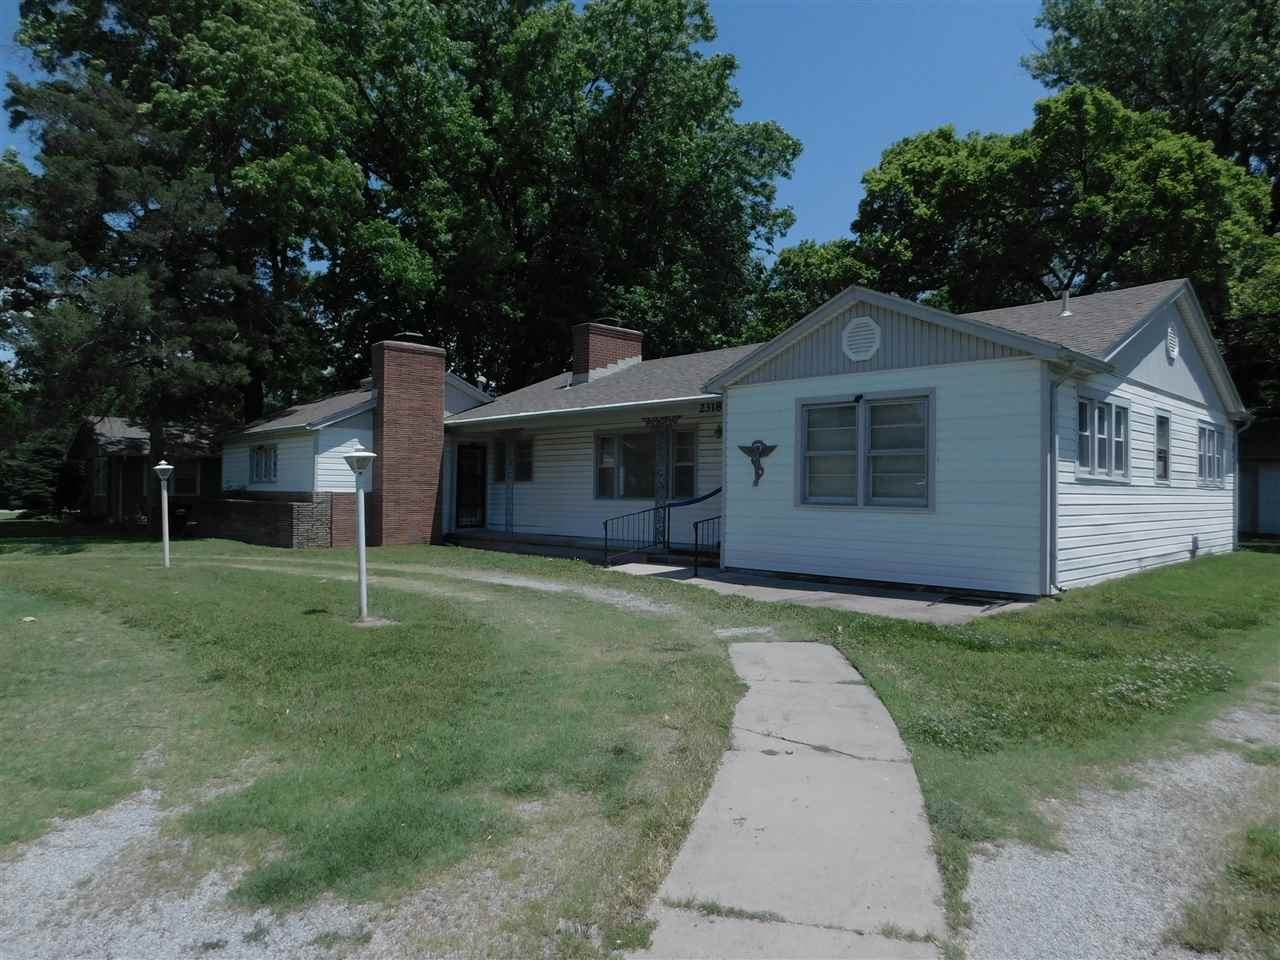 Great Opportunity for 1900 sqft on main floor, basement and large lot at $1000s below tax appraisal!